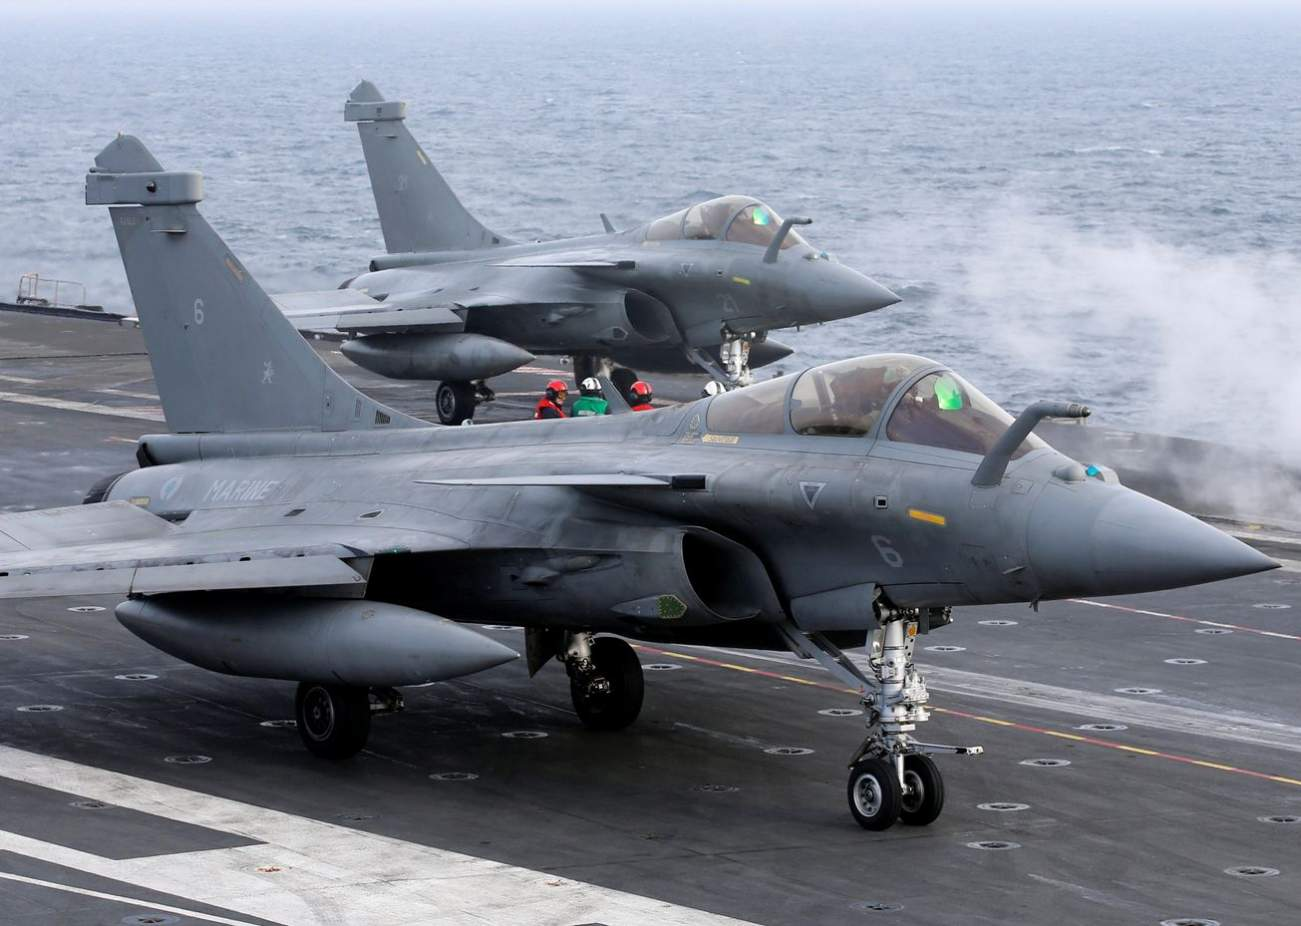 France Is Getting a New Rafale Fighter Jet (But It Won't Be An F-35)